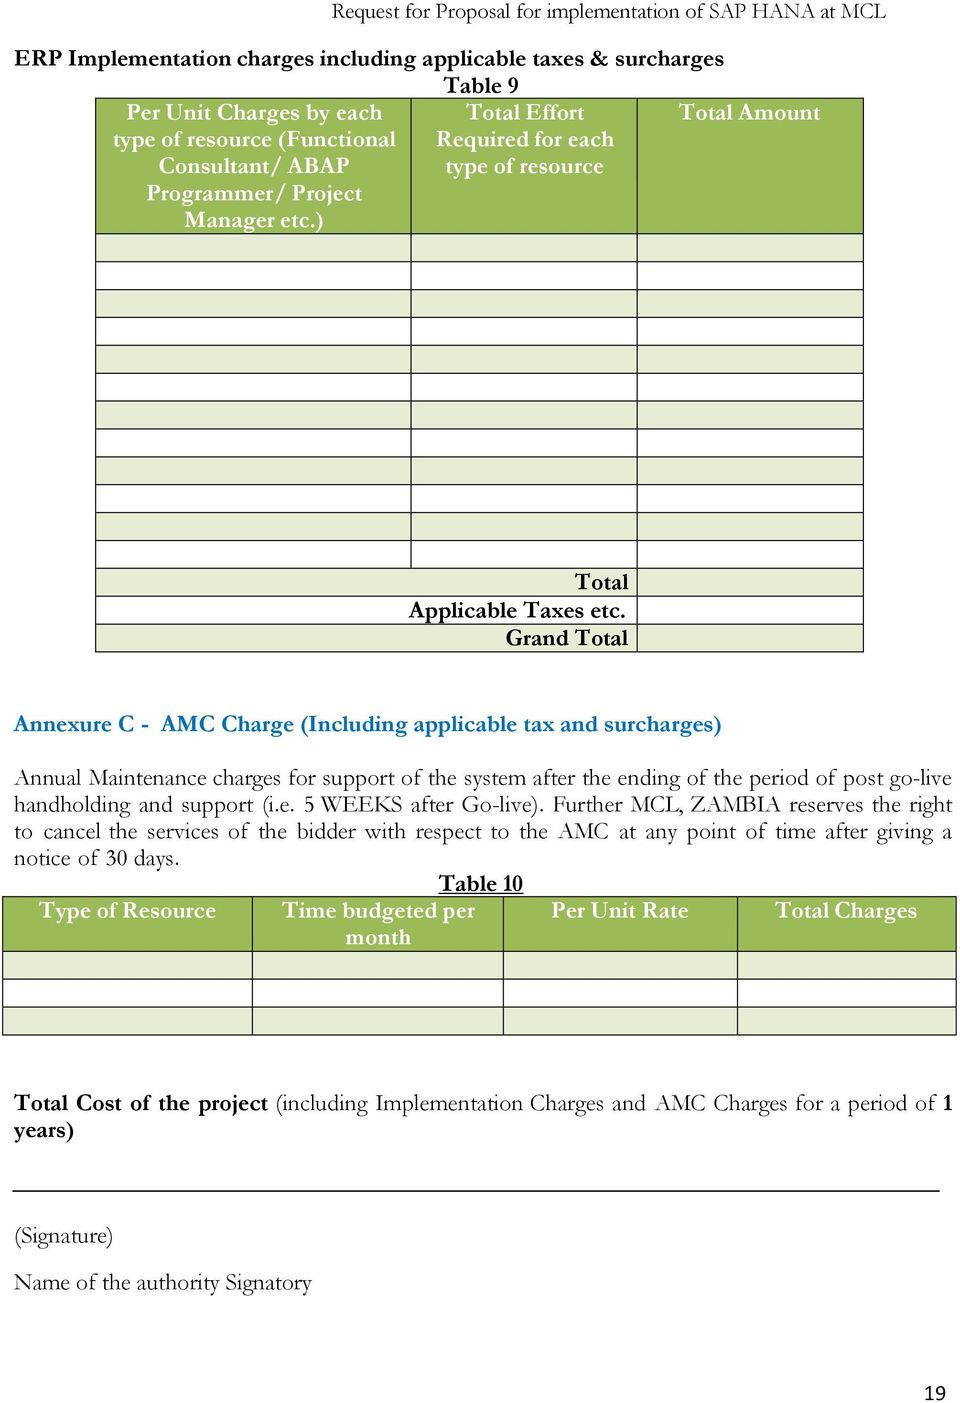 Grand Total Annexure C - AMC Charge (Including applicable tax and surcharges) Annual Maintenance charges for support of the system after the ending of the period of post go-live handholding and